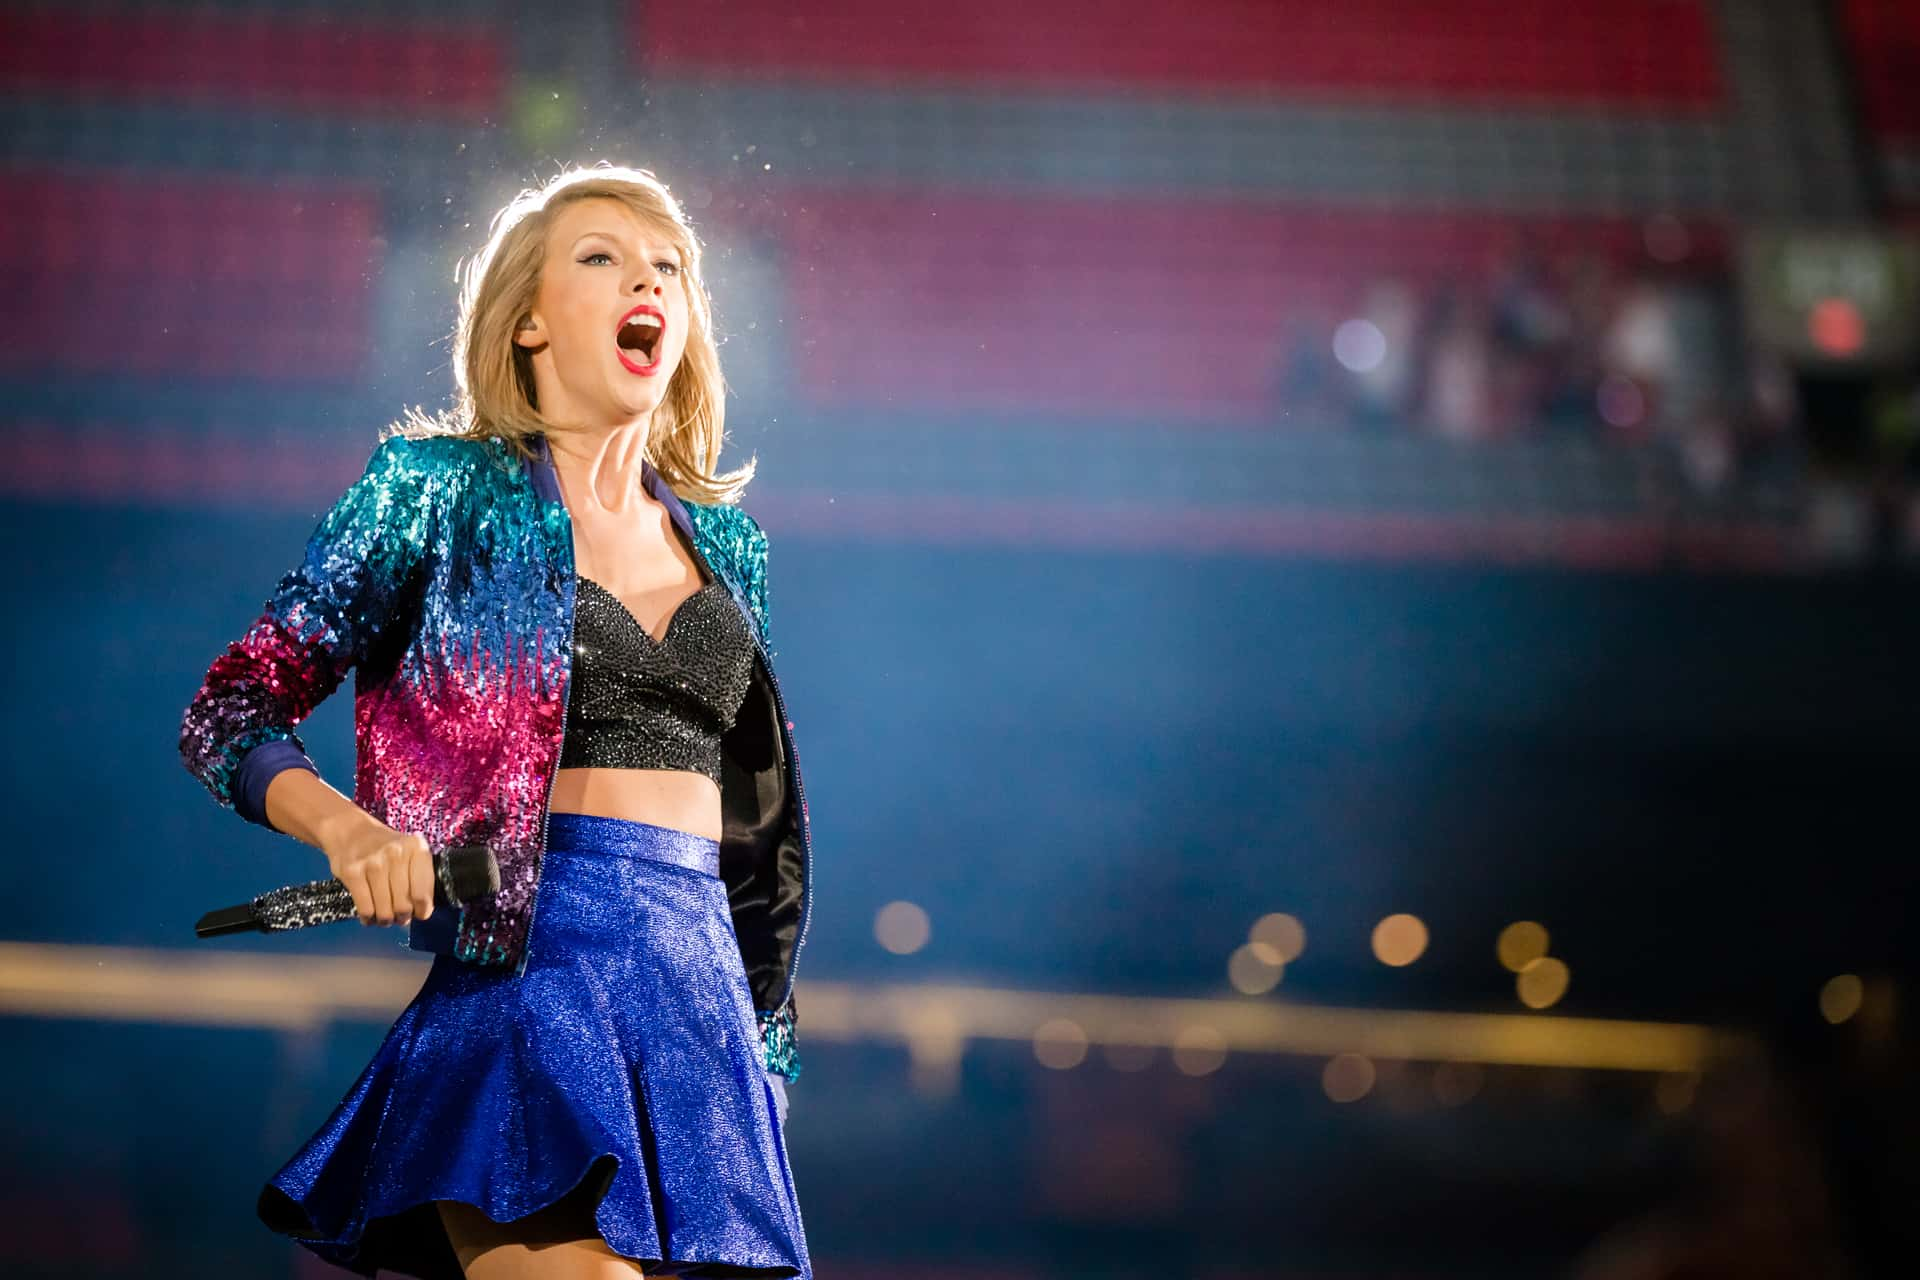 Taylor Swift performing at BC Place in Vancouver, BC on August 1st 2015, The 1989 World Tour, taken by Jamie Taylor